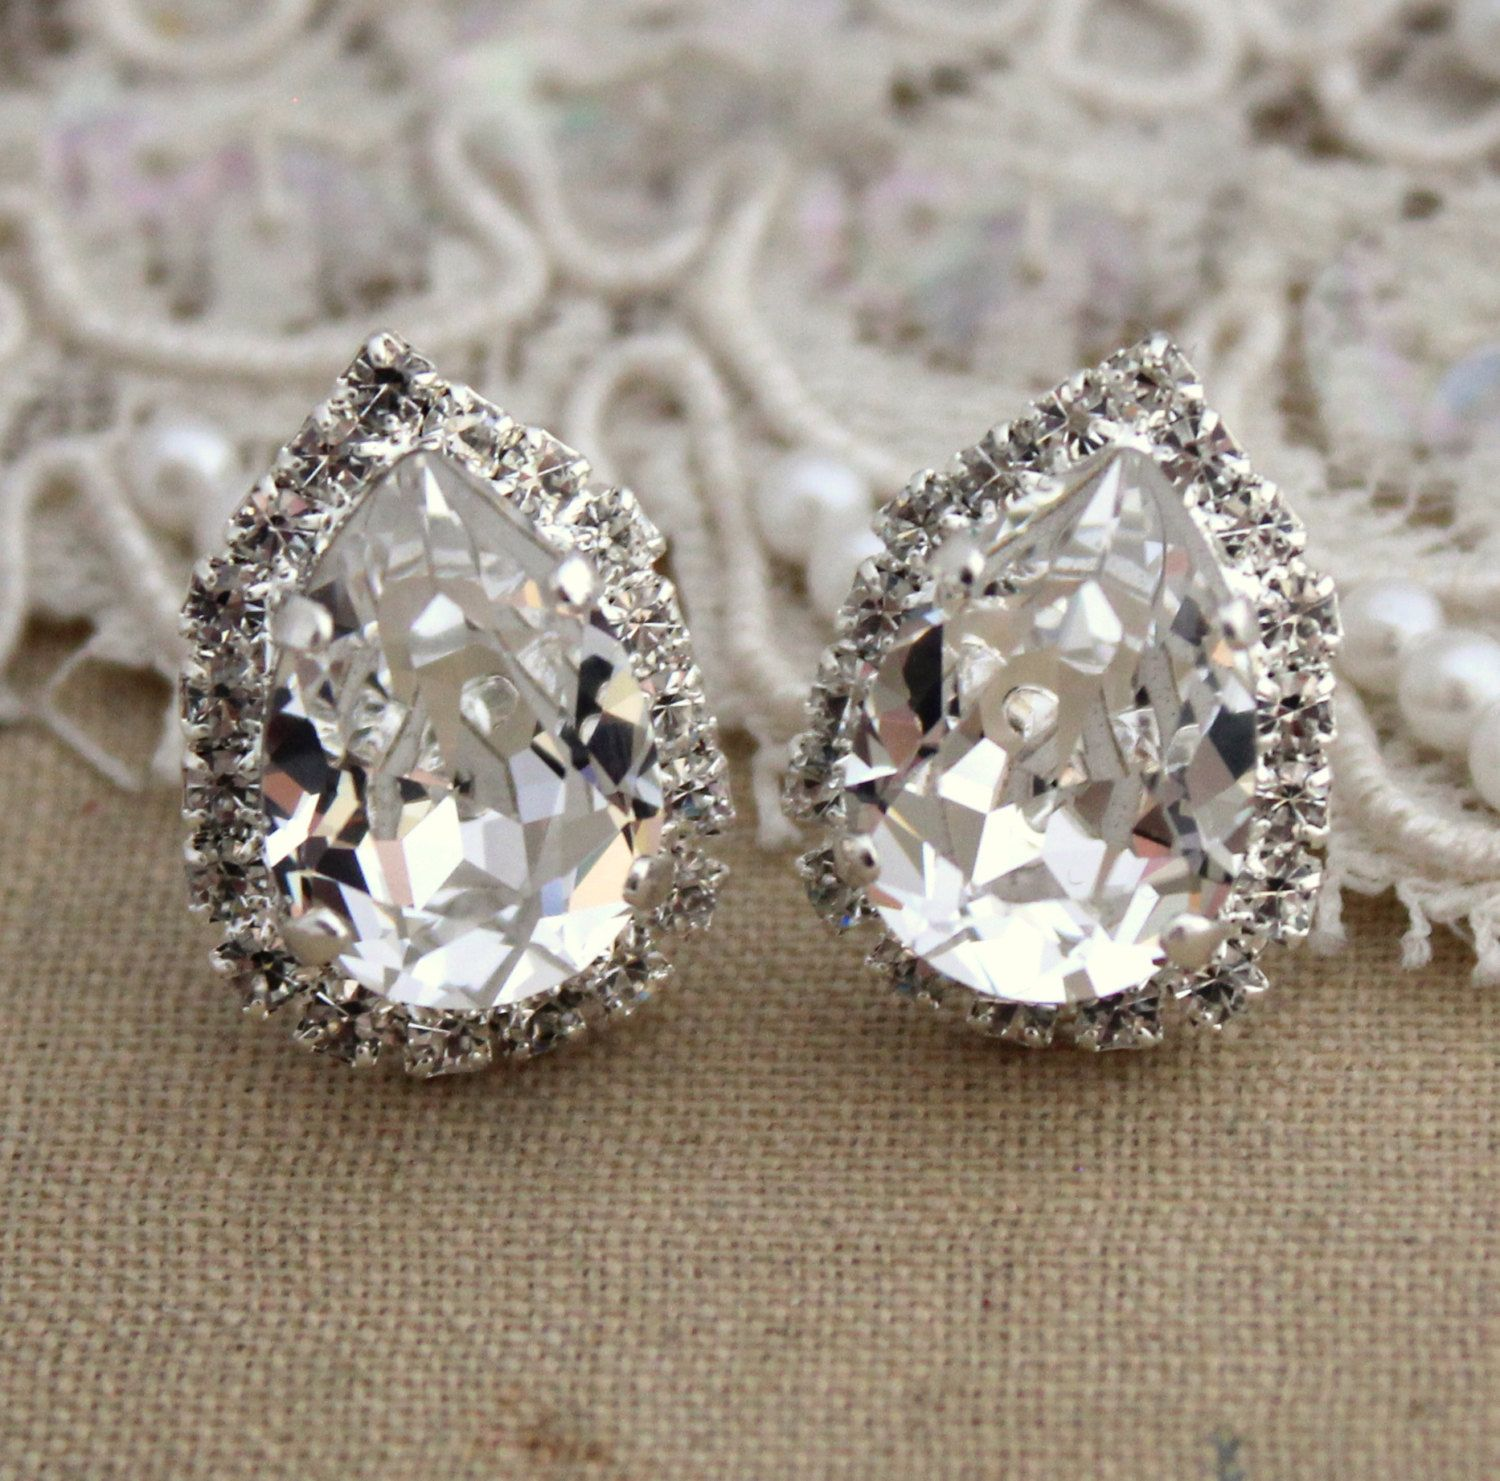 Elegant Crystal Solitaires Earrings.Bridesmaid gift wedding jewelry 14k gold fill or all  silver Bridal Earrings mothers day gift